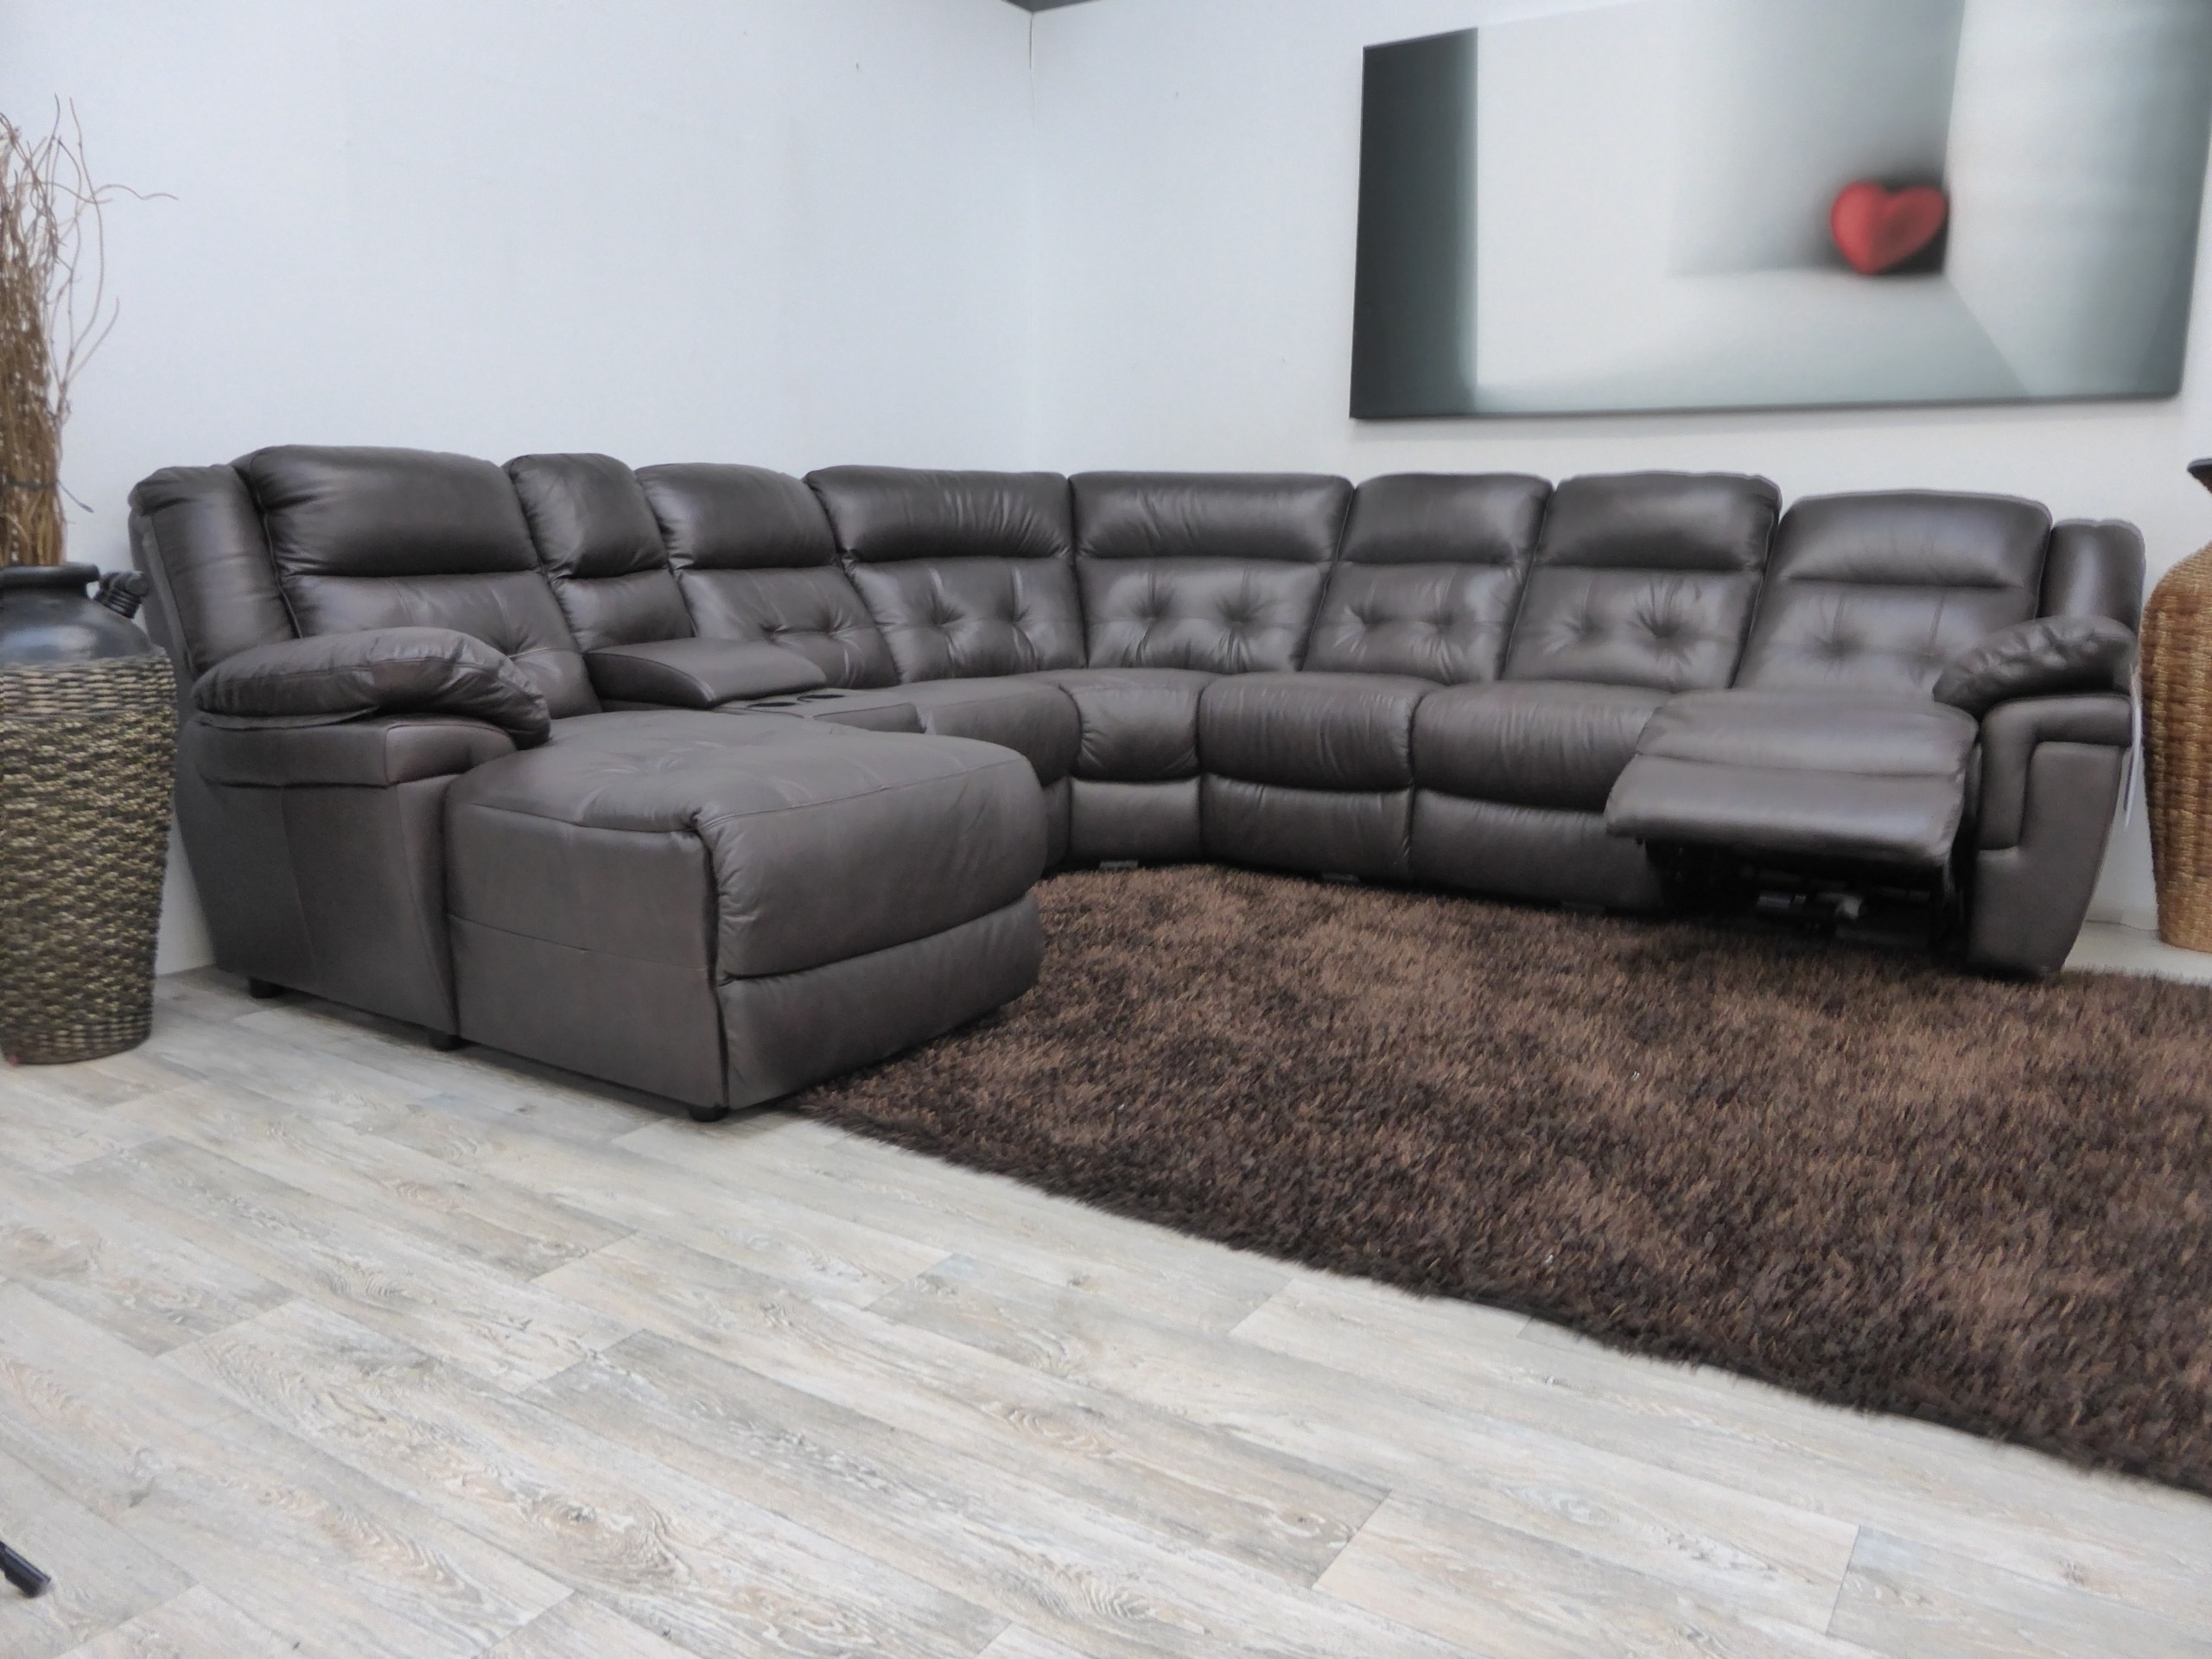 20 The Best Sectional Sofas At Craigslist